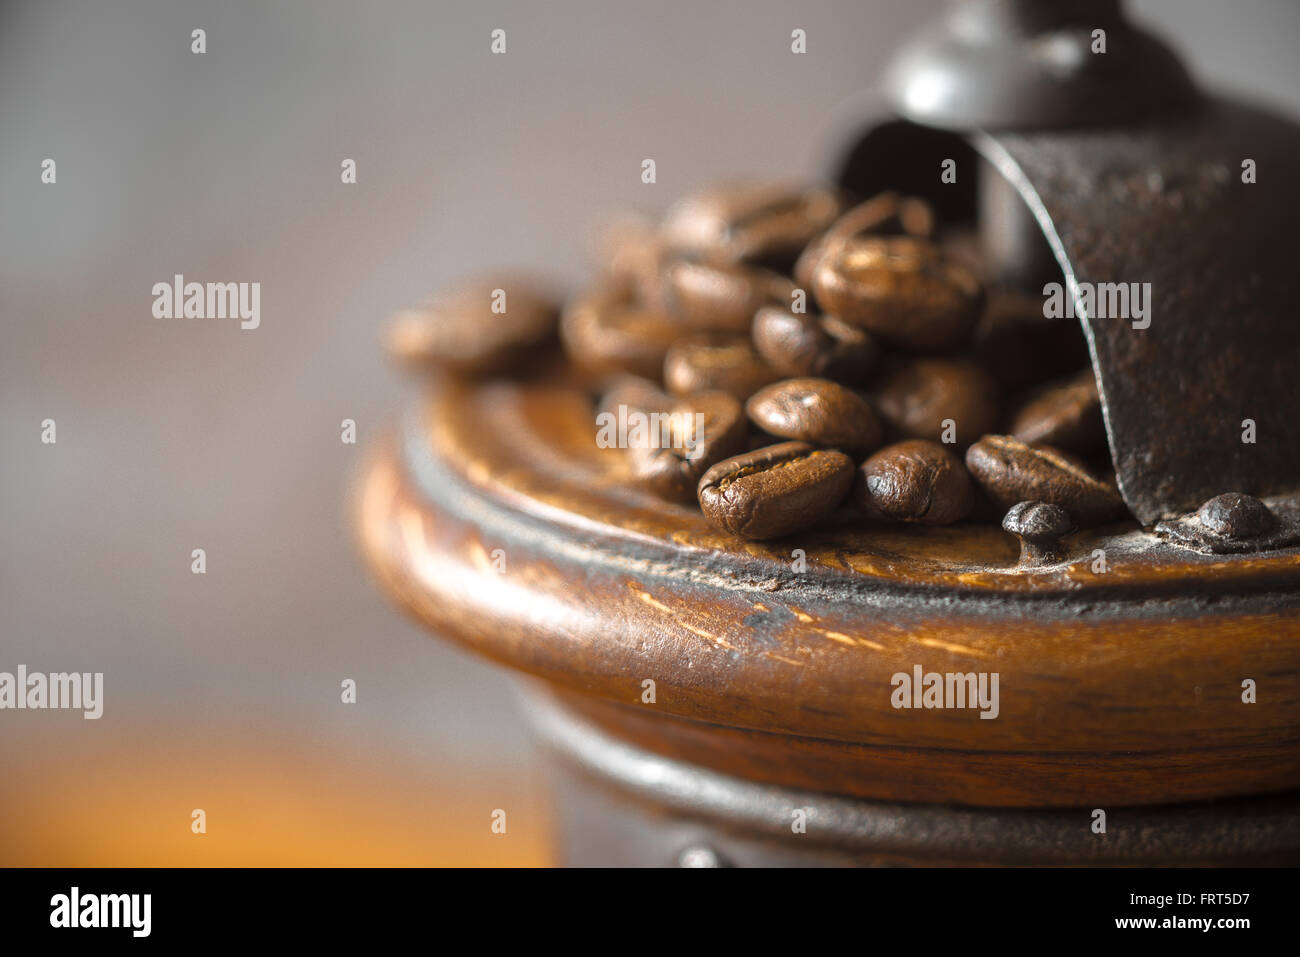 Coffee mill with coffee beans close-up - Stock Image